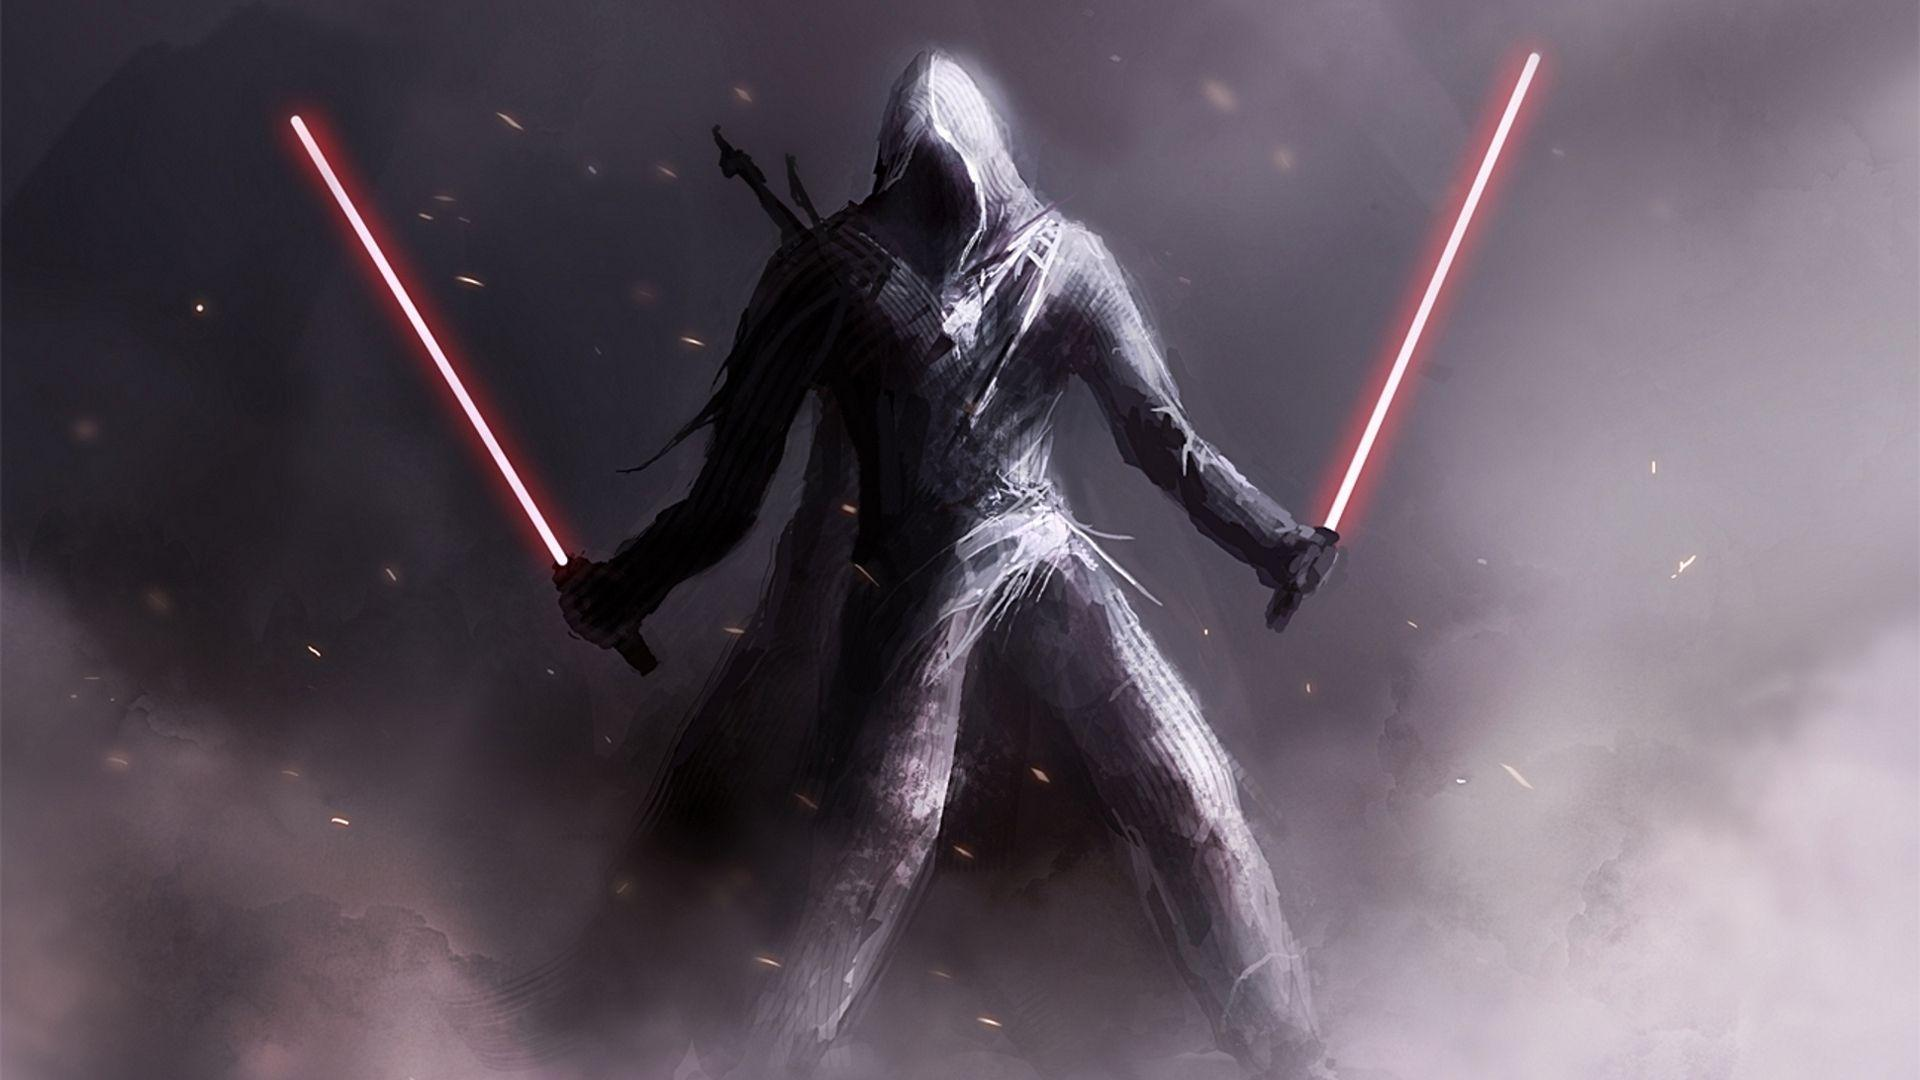 Image For > Star Wars Sith Wallpapers 1920x1080